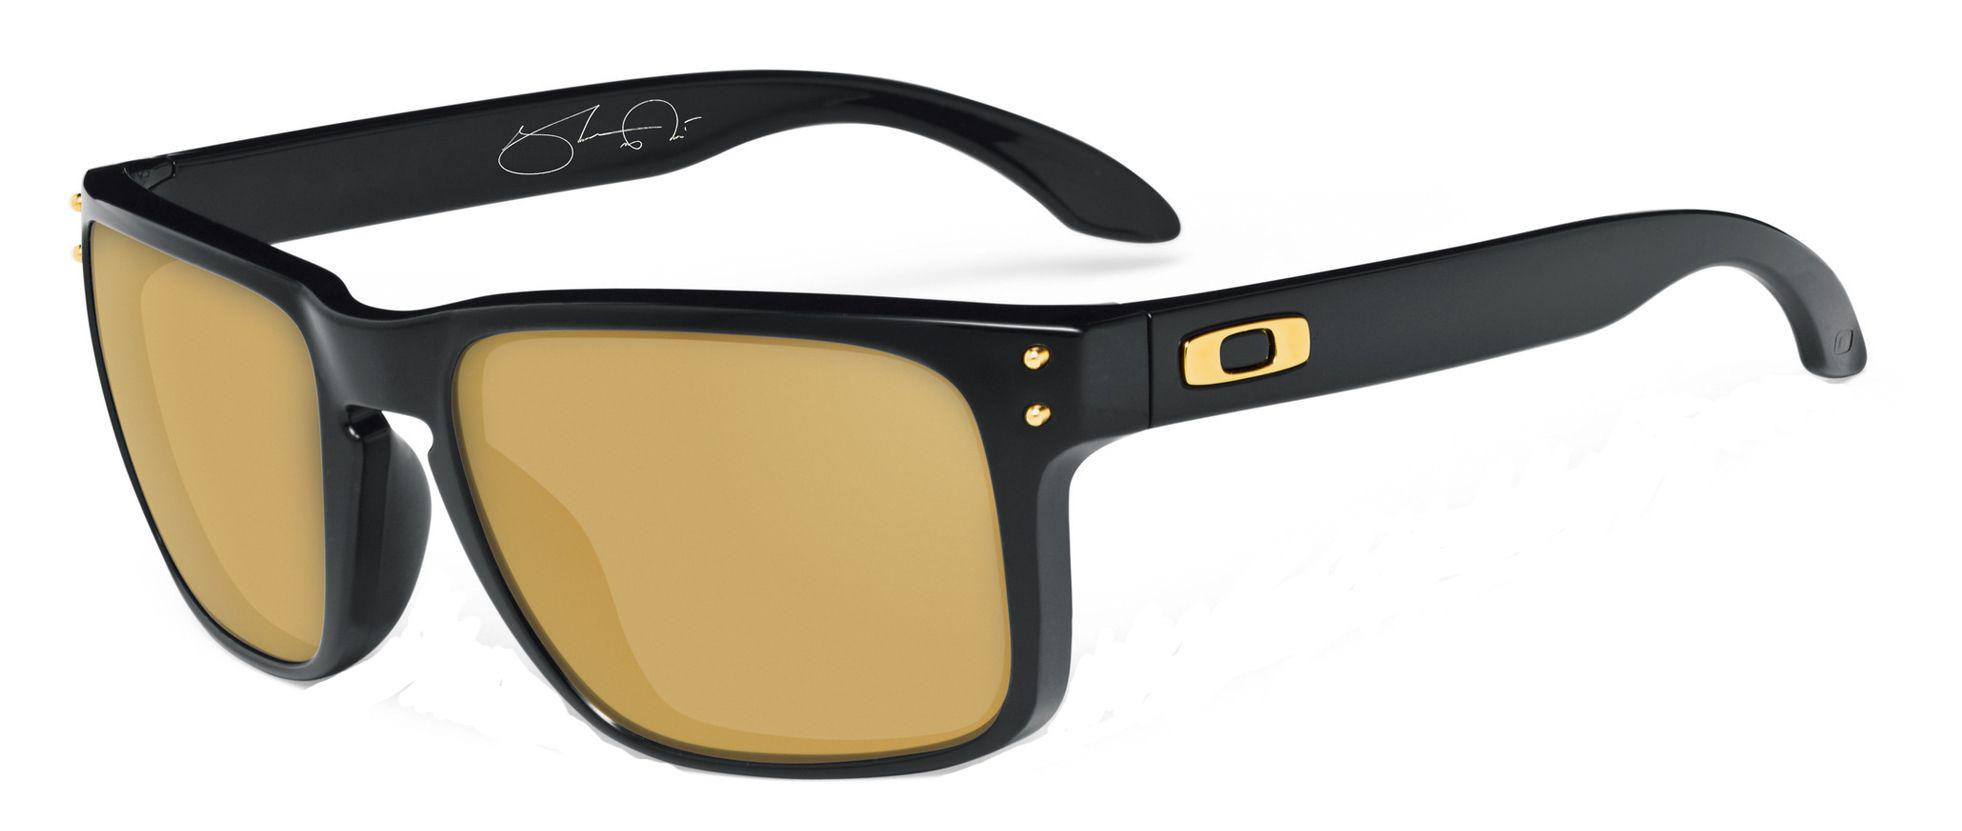 1d070086443 Lyst - Oakley Holbrook Shaun White Signature Series Sunglasses in ...